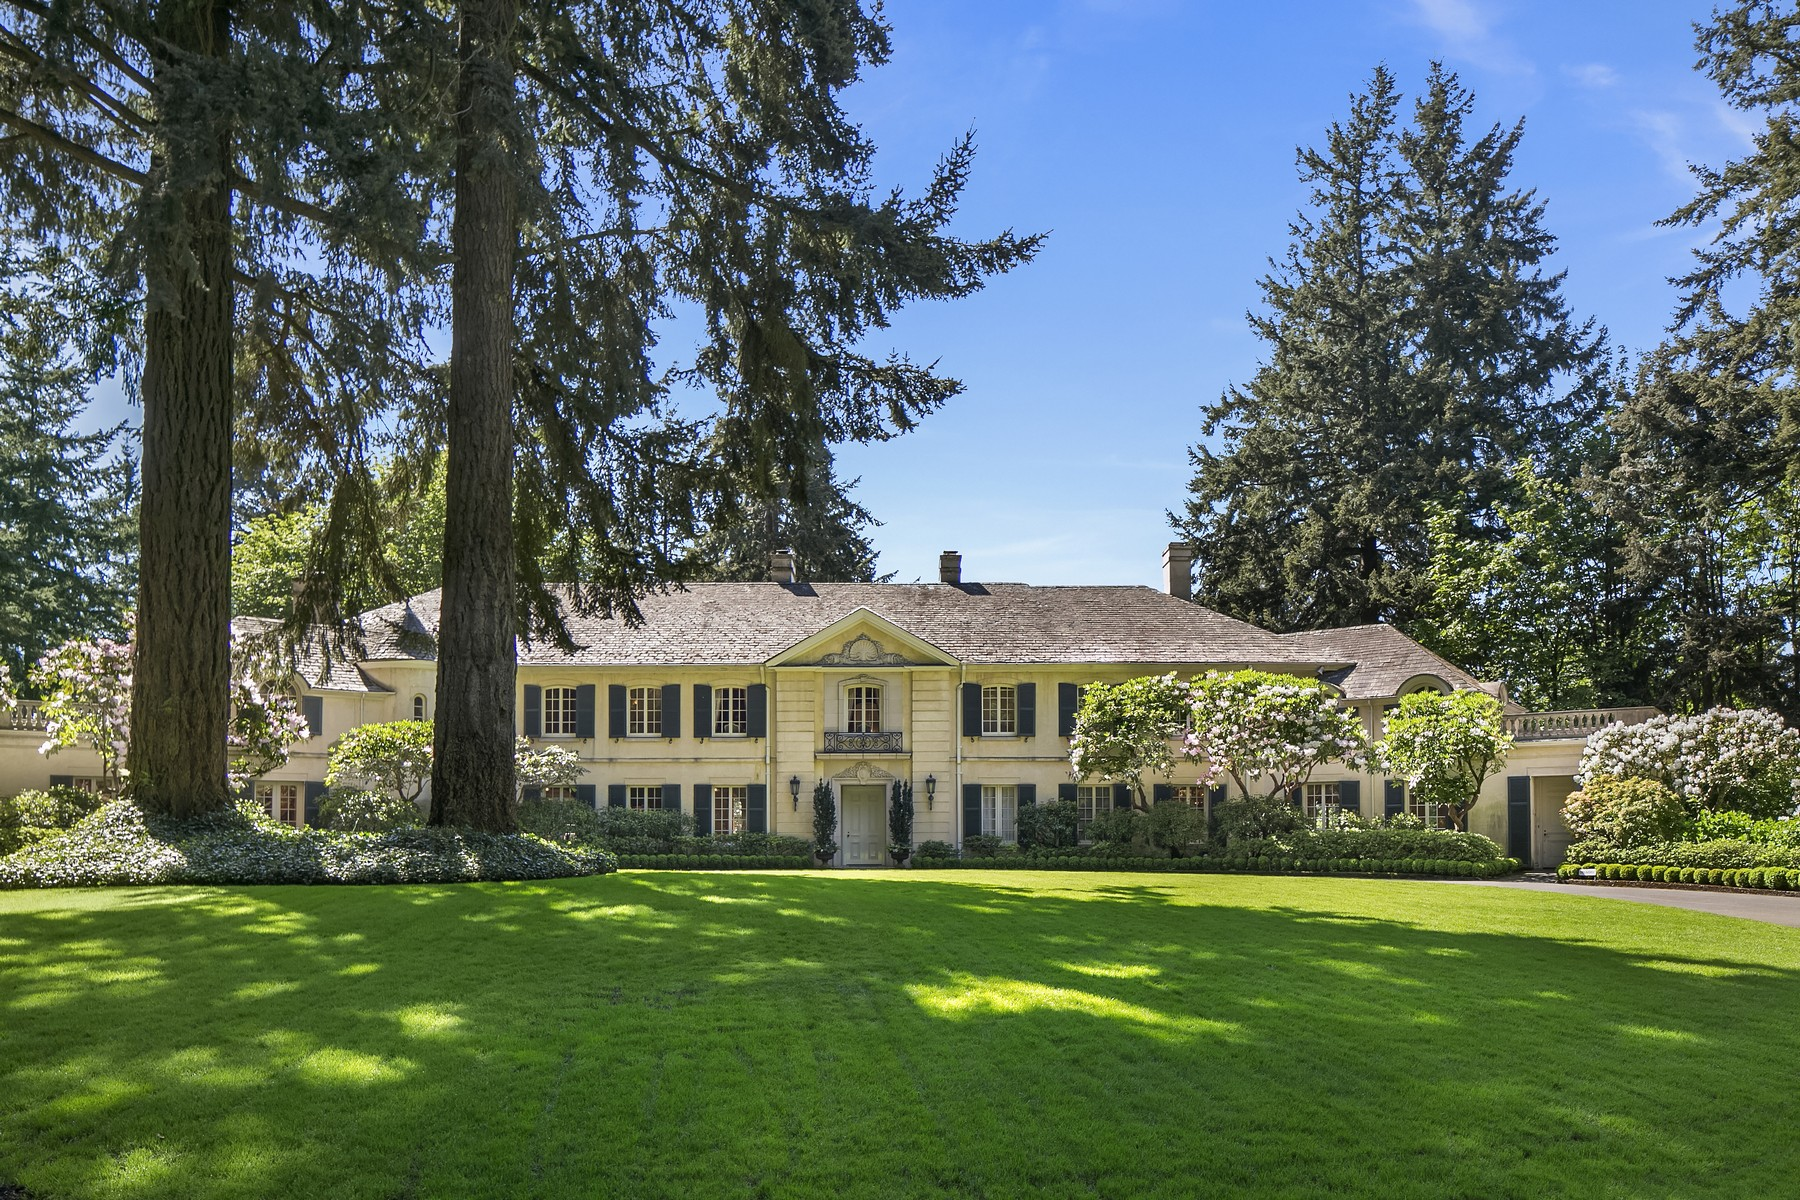 Single Family Home for Sale at Chapel Lane Estate 166 Boundary Lane NW The Highlands, Seattle, Washington, 98177 United States